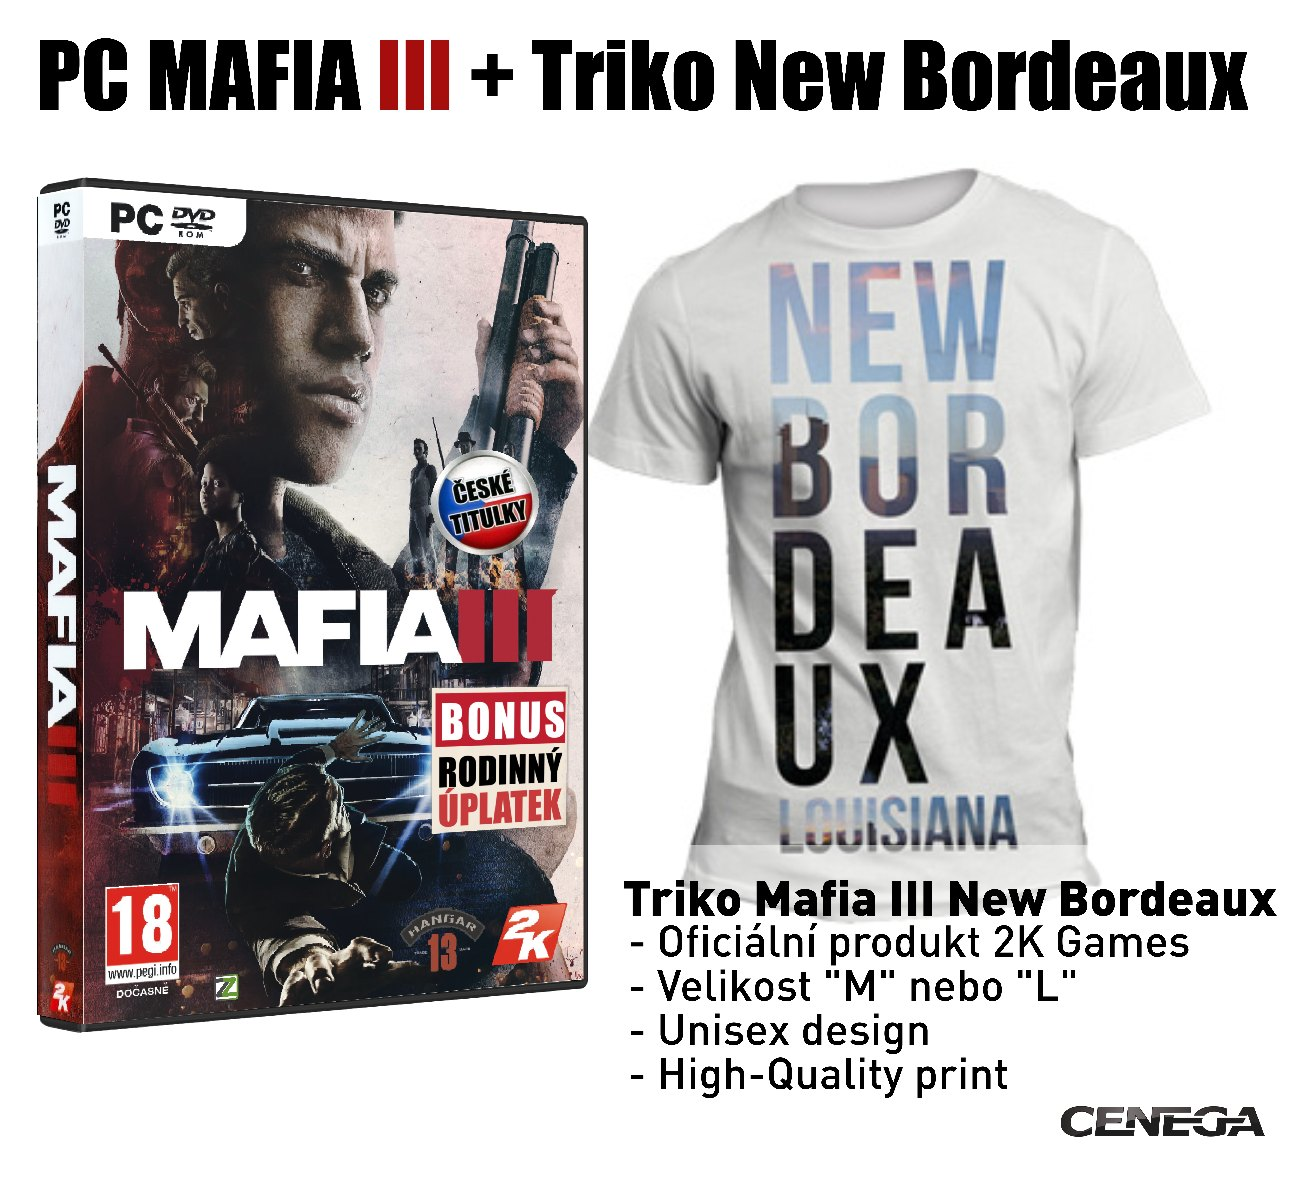 MAFIA III PC +Triko Mafia 3 New Bordeaux